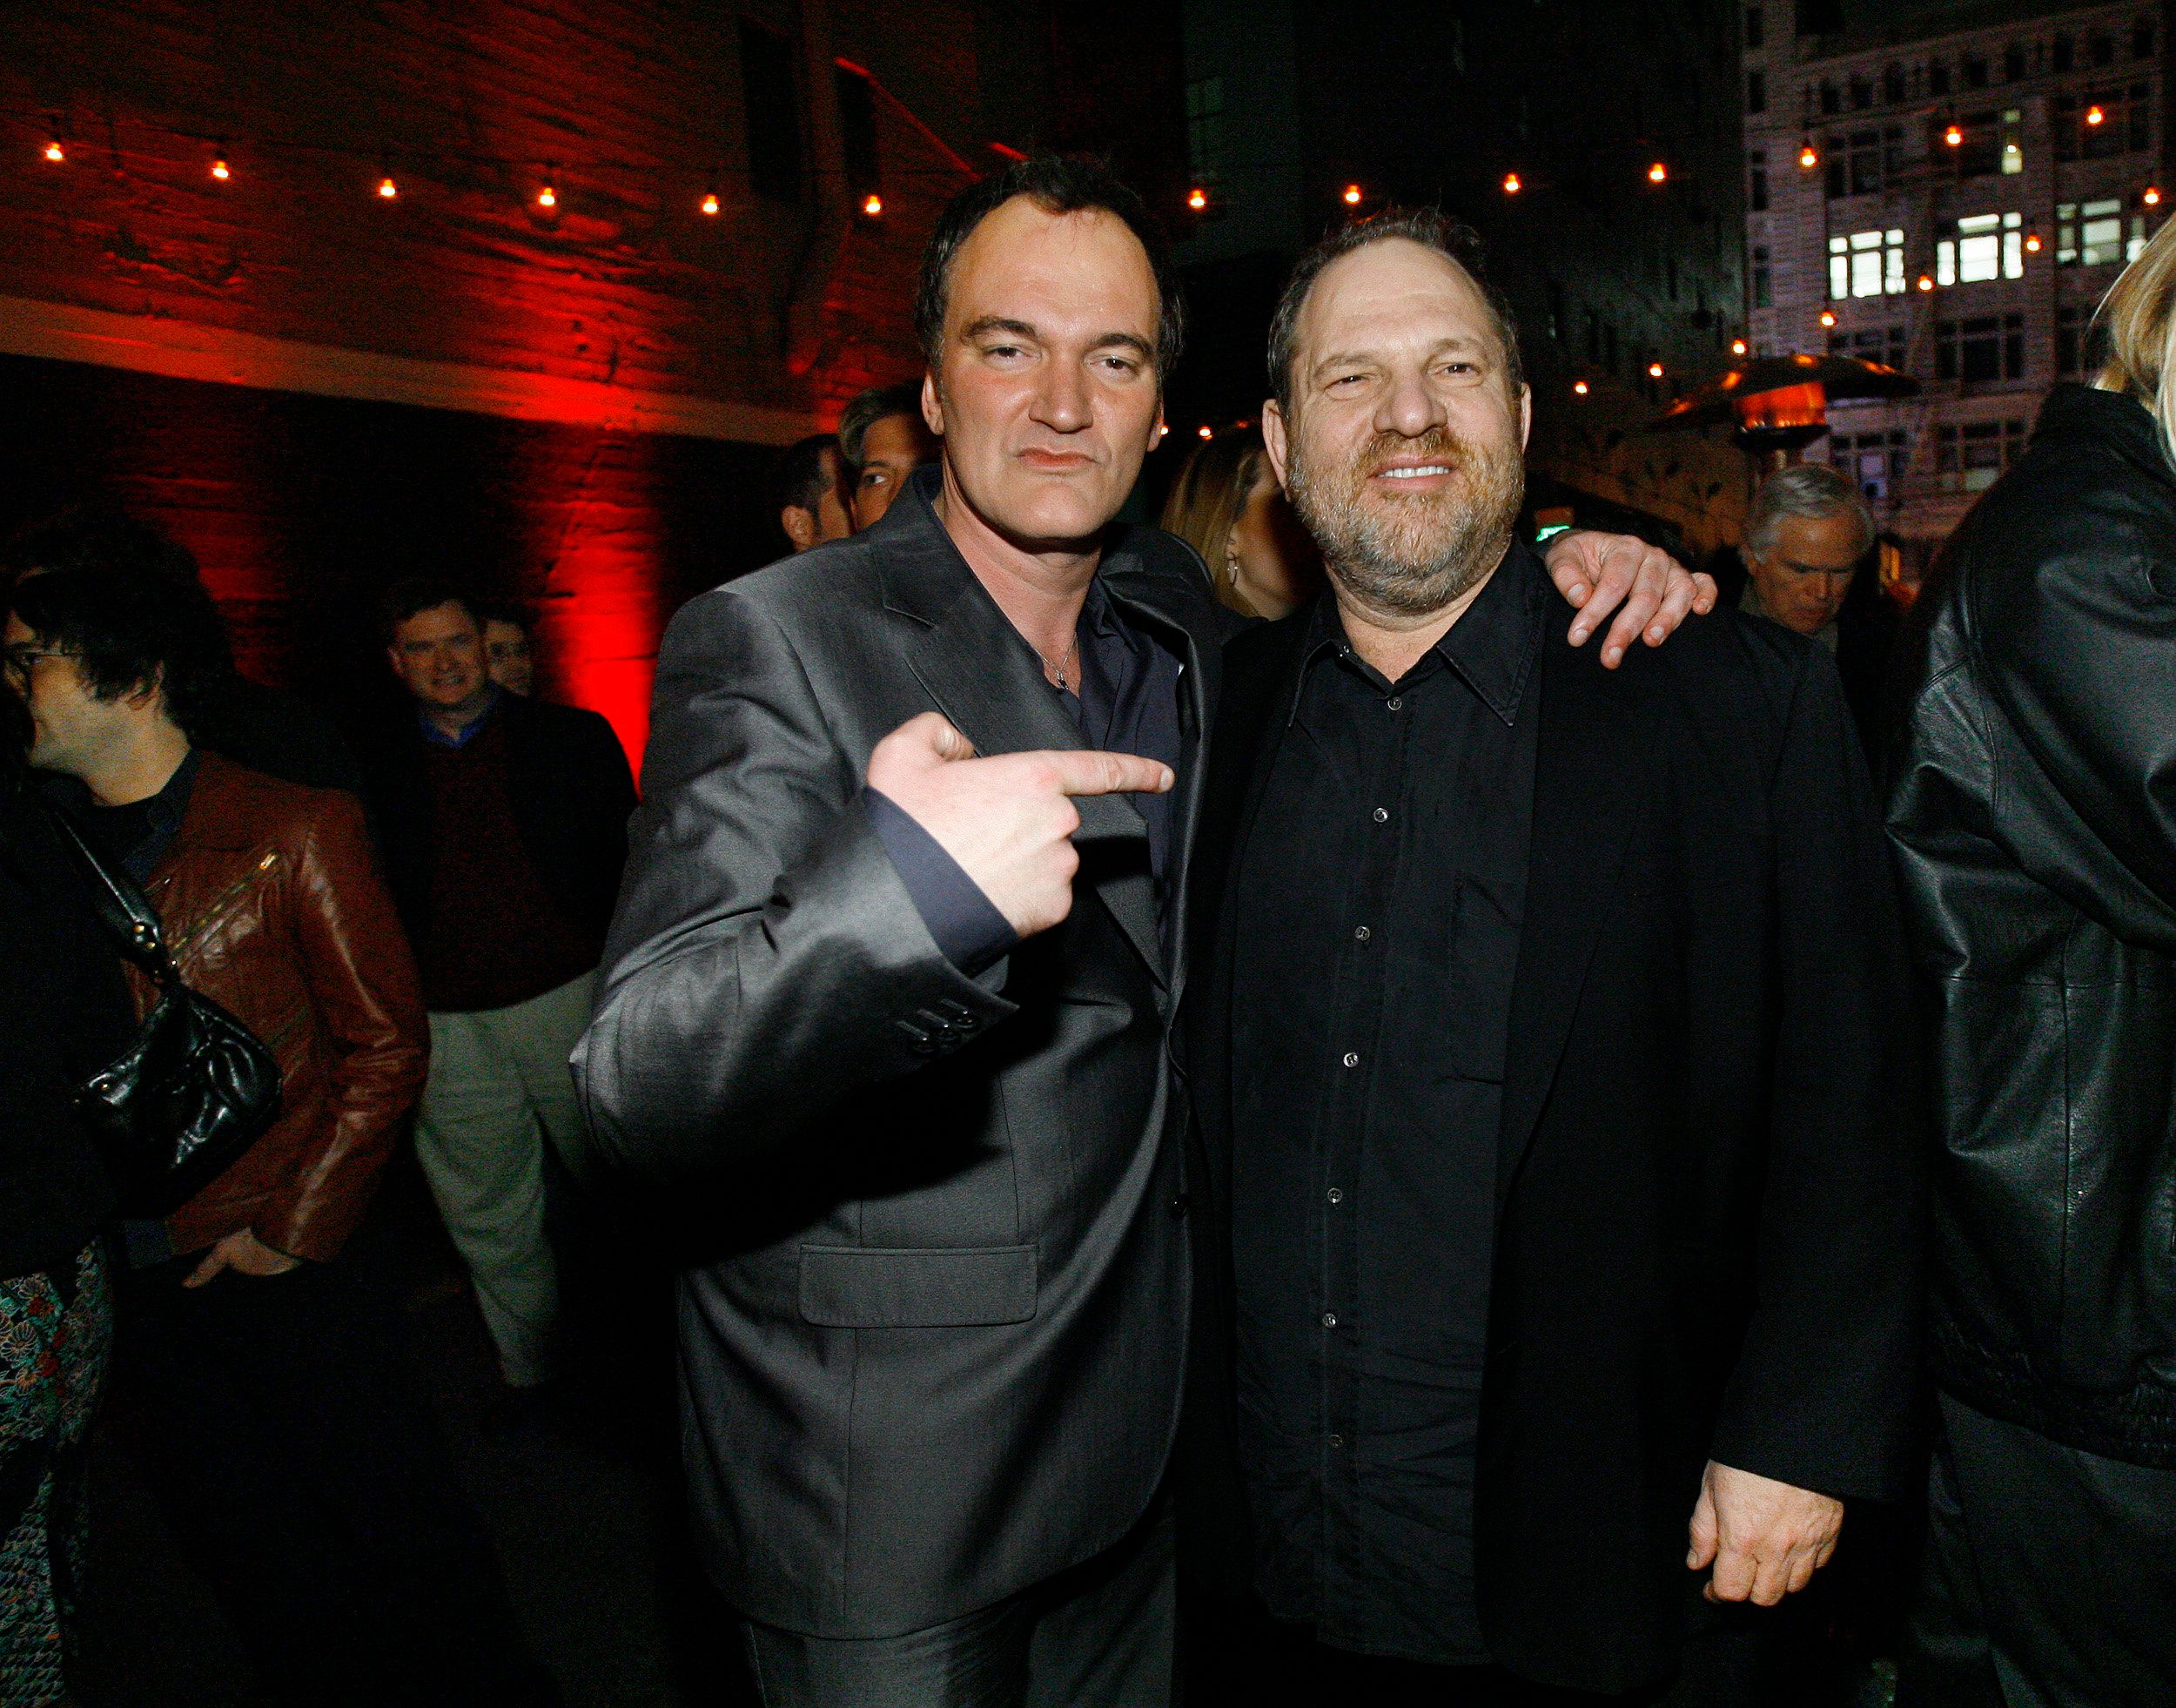 "Director Quentin Tarantino (L) points at producer Harvey Weinstein at the after-party for the premiere of ""Grindhouse"" in Los Angeles March 26, 2007. The movie features two full length horror movies, ""Death Proof"" and ""Planet Terror"", written and directed respectively by Quentin Tarantino and Robert Rodriguez. The movie opens in the U.S. on April 6. REUTERS/Mario Anzuoni (UNITED STATES)"